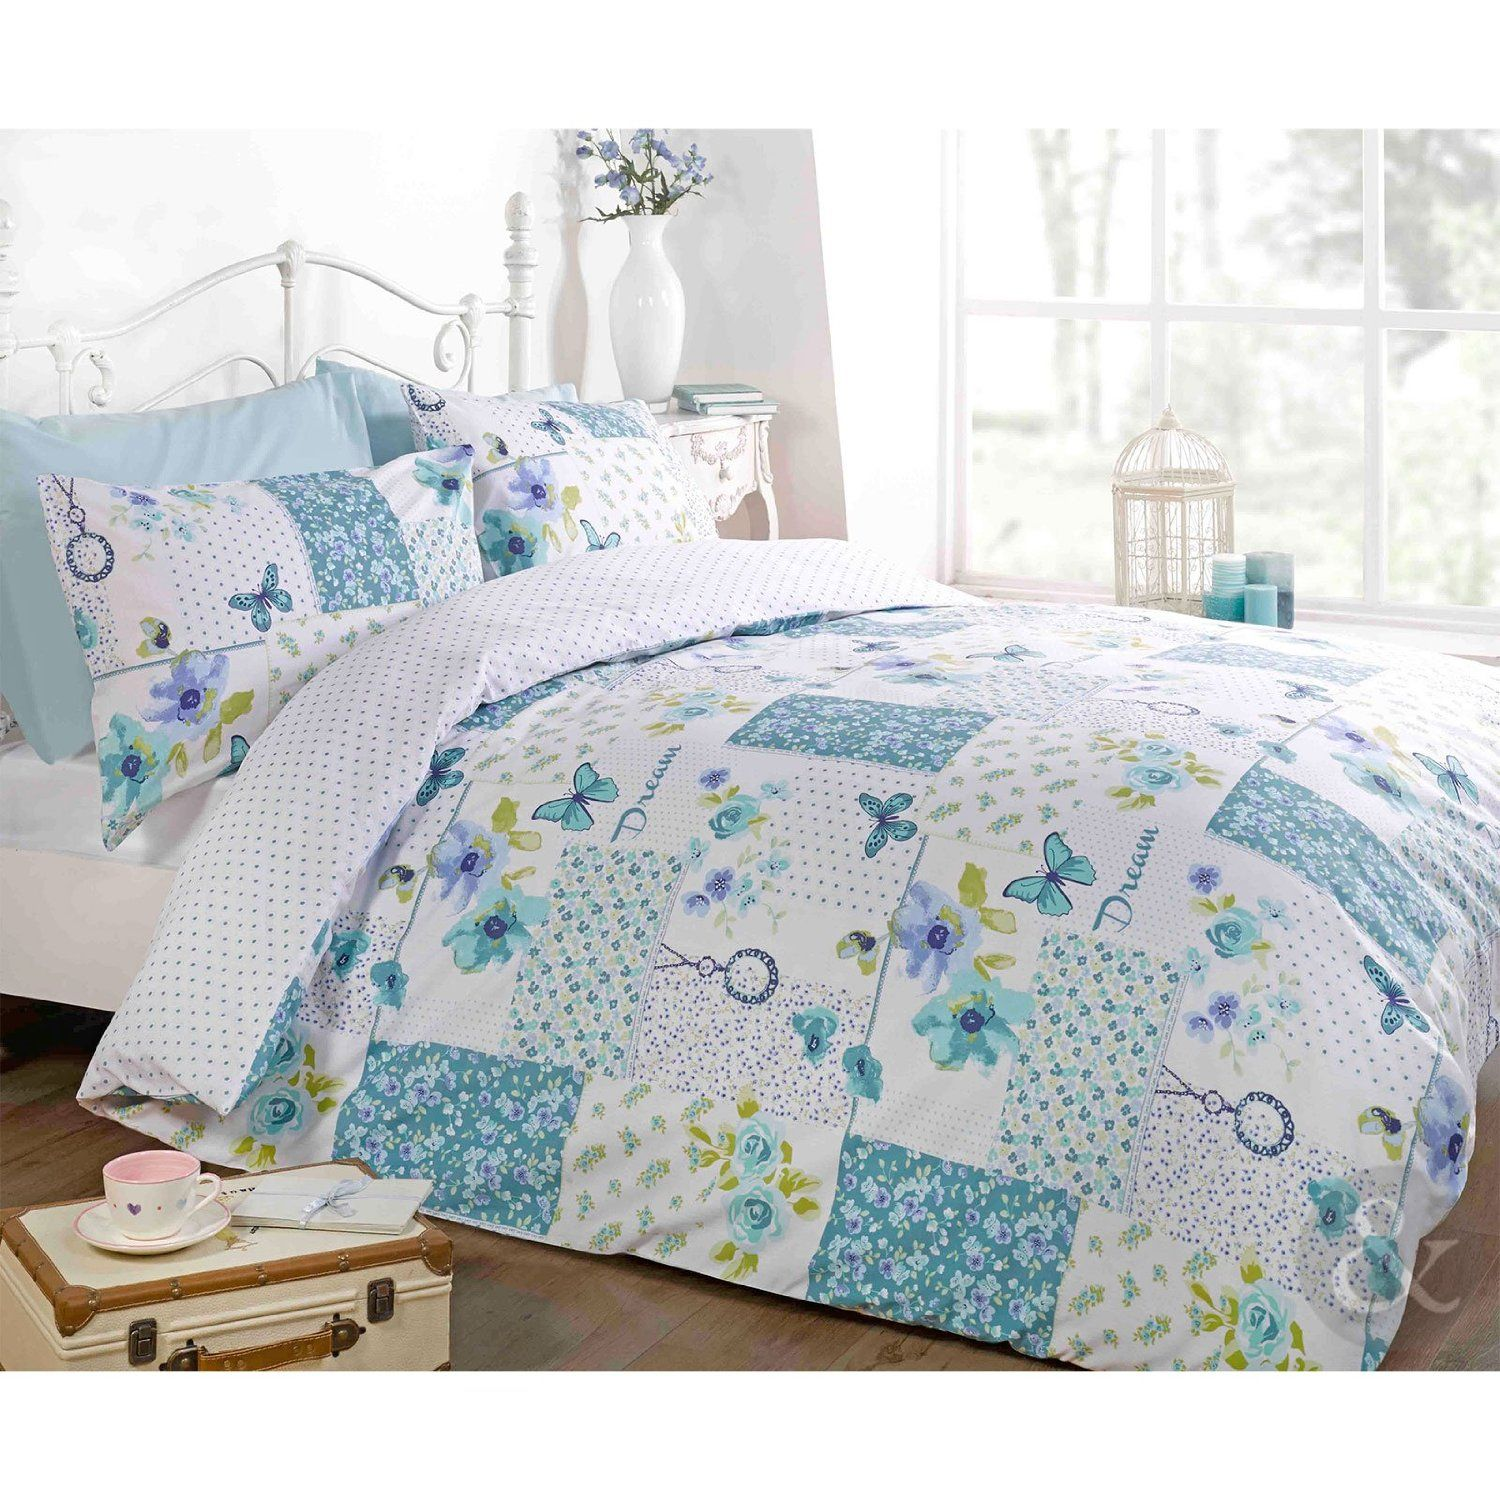 BUTTERFLY FLORAL PATCHWORK DUVET COVER - Reversible White Teal Blue ...